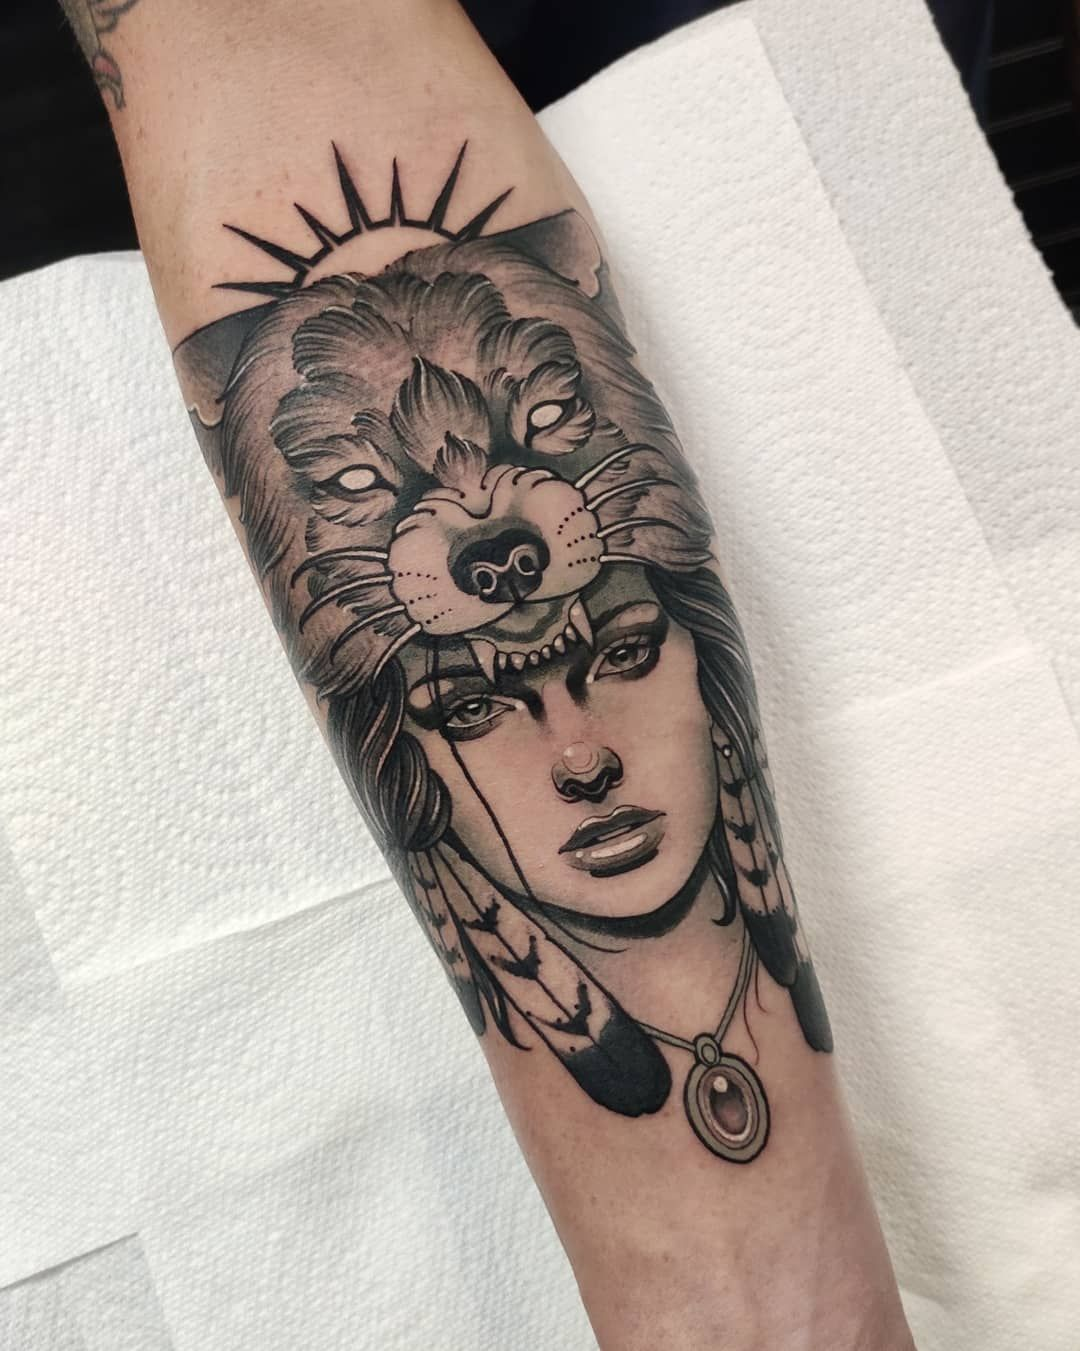 60 Best Native American Tattoo Designs To Inspire You Native American Tattoo Designs Native American Tattoo Native Tattoos